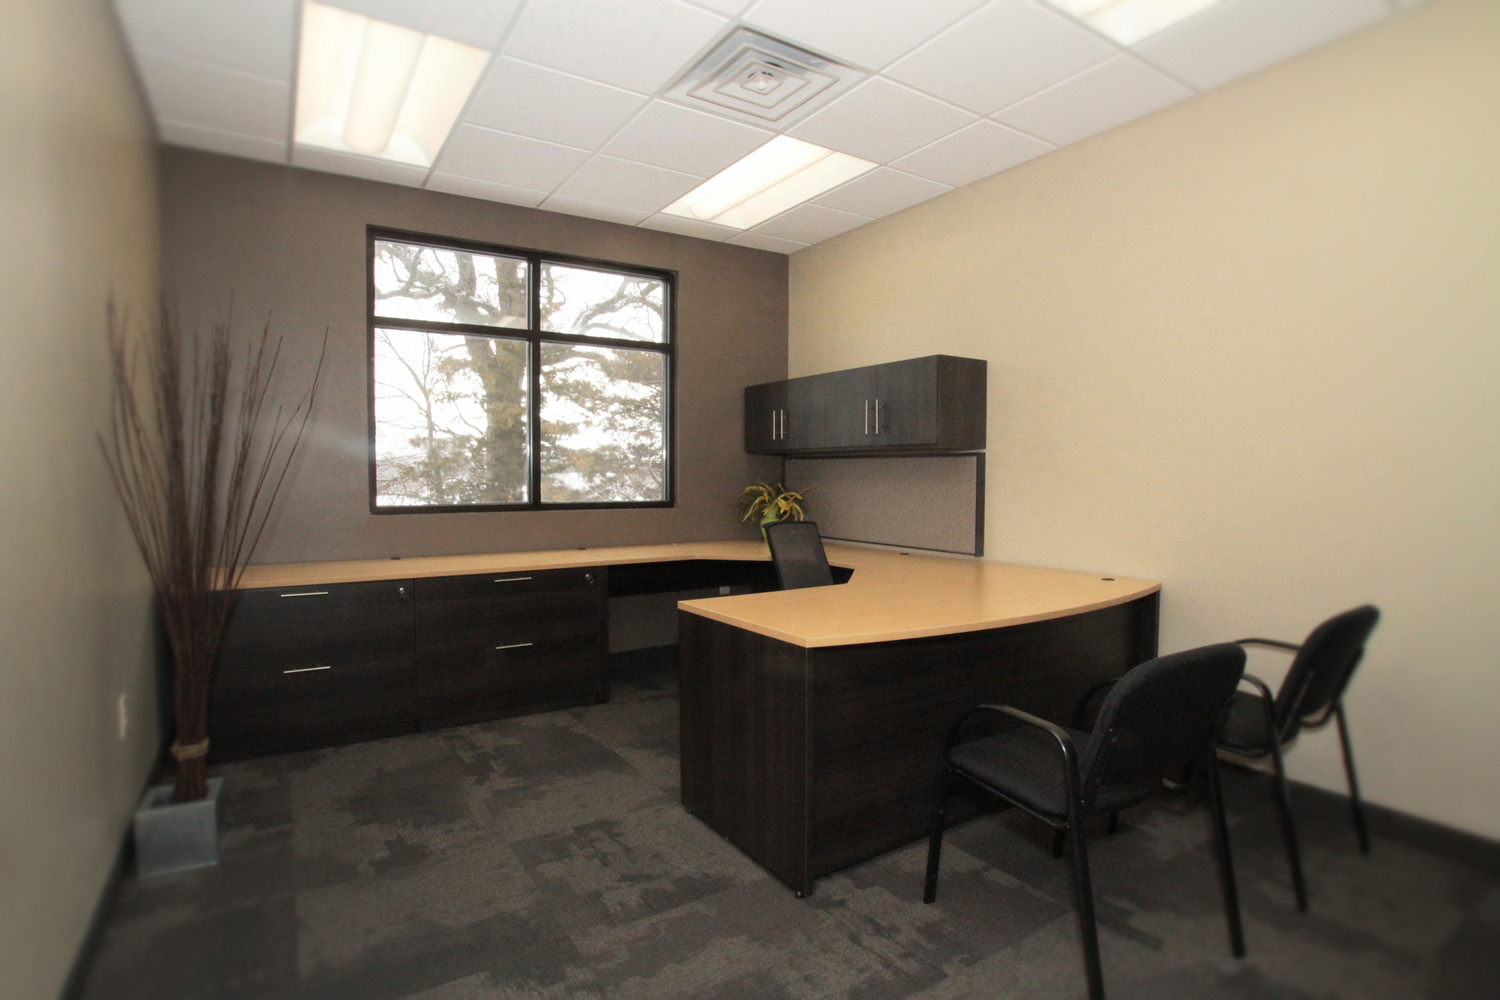 Office space design mankato new used office furnishings mankato - Small space home office furniture ideas ...